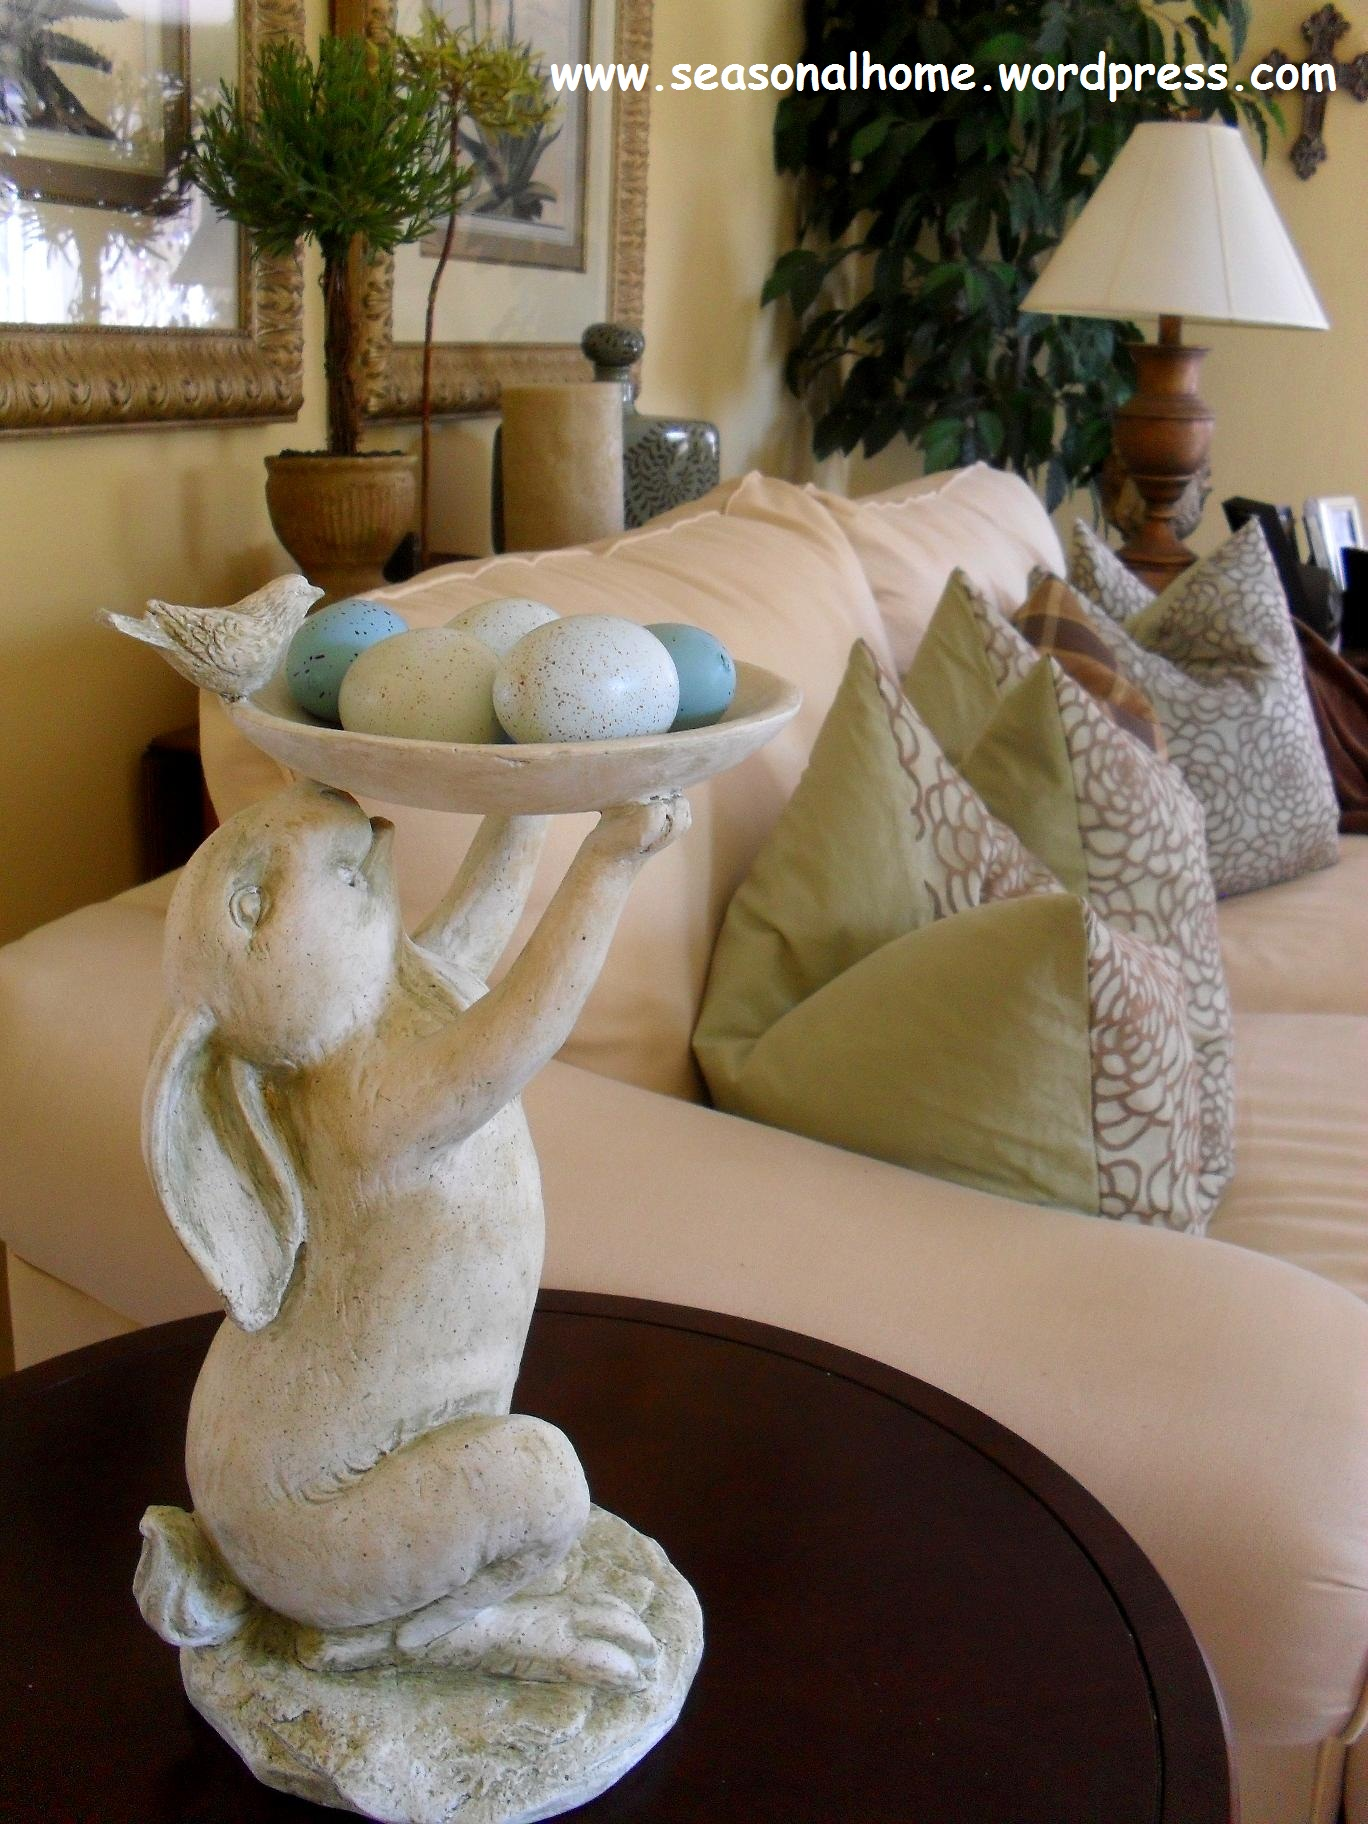 No cal chocolate bunnies for easter lol the for Home goods easter decorations